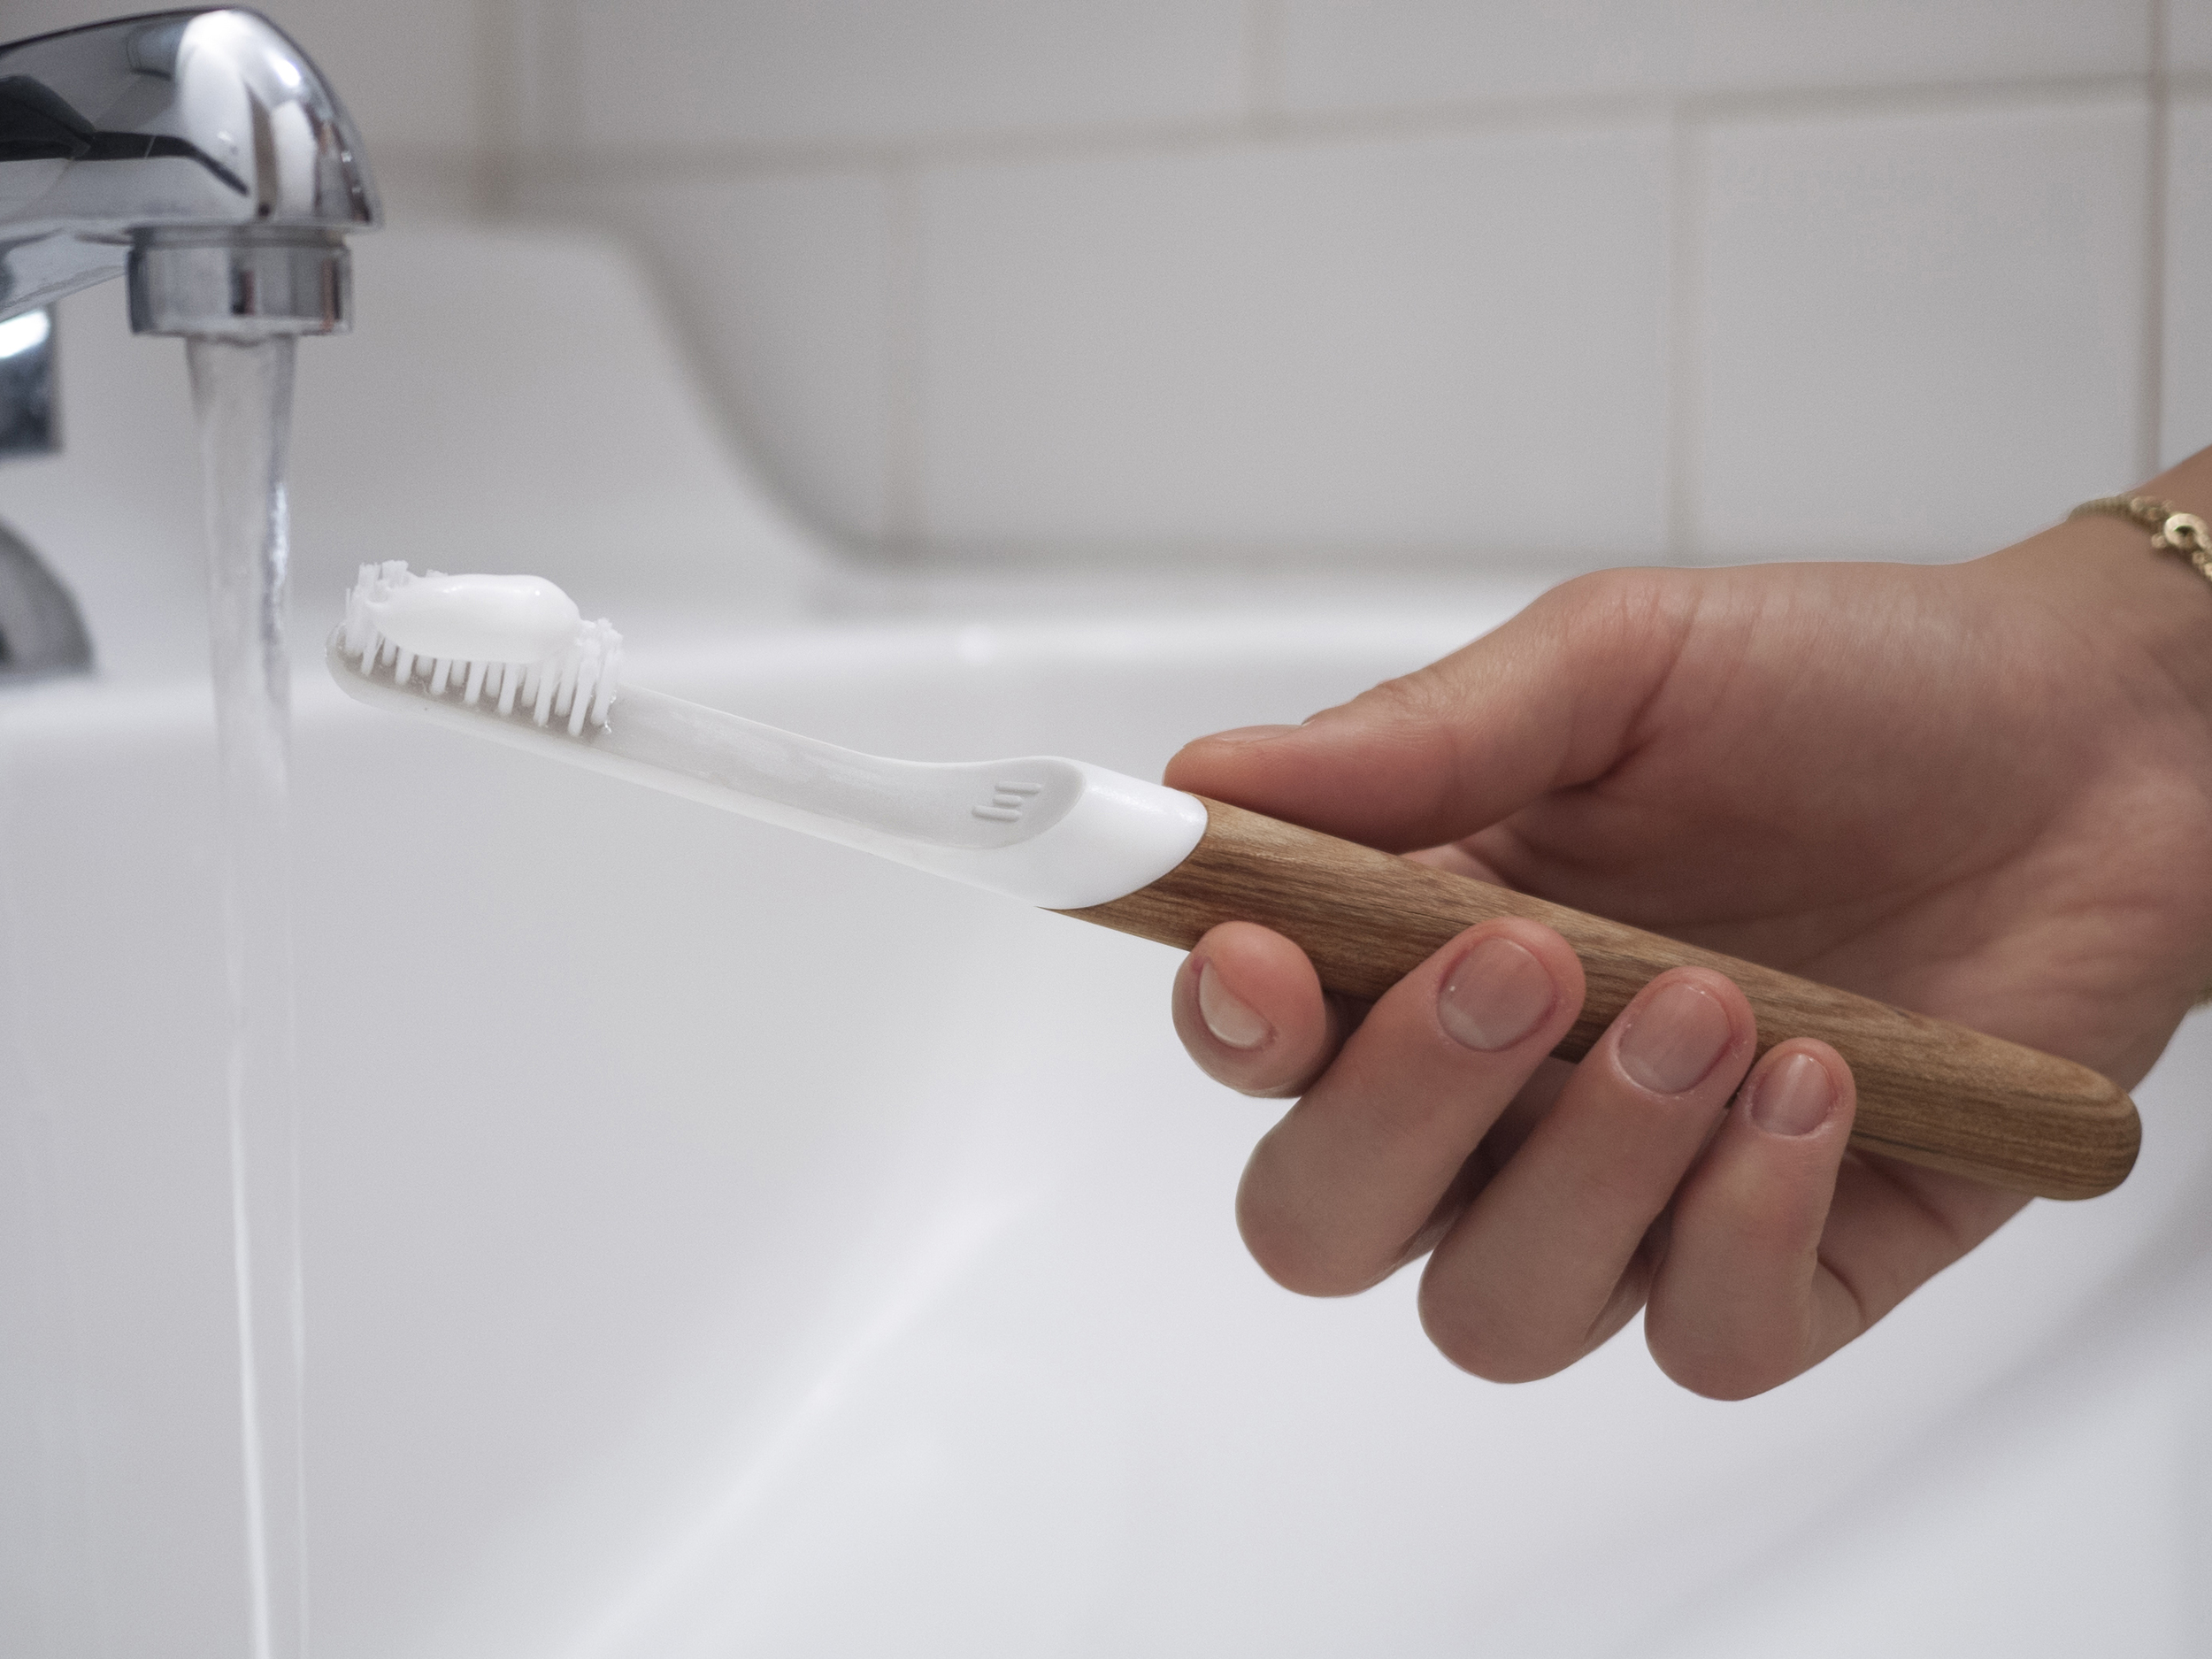 TOOTHBRUSH by DEFAULT